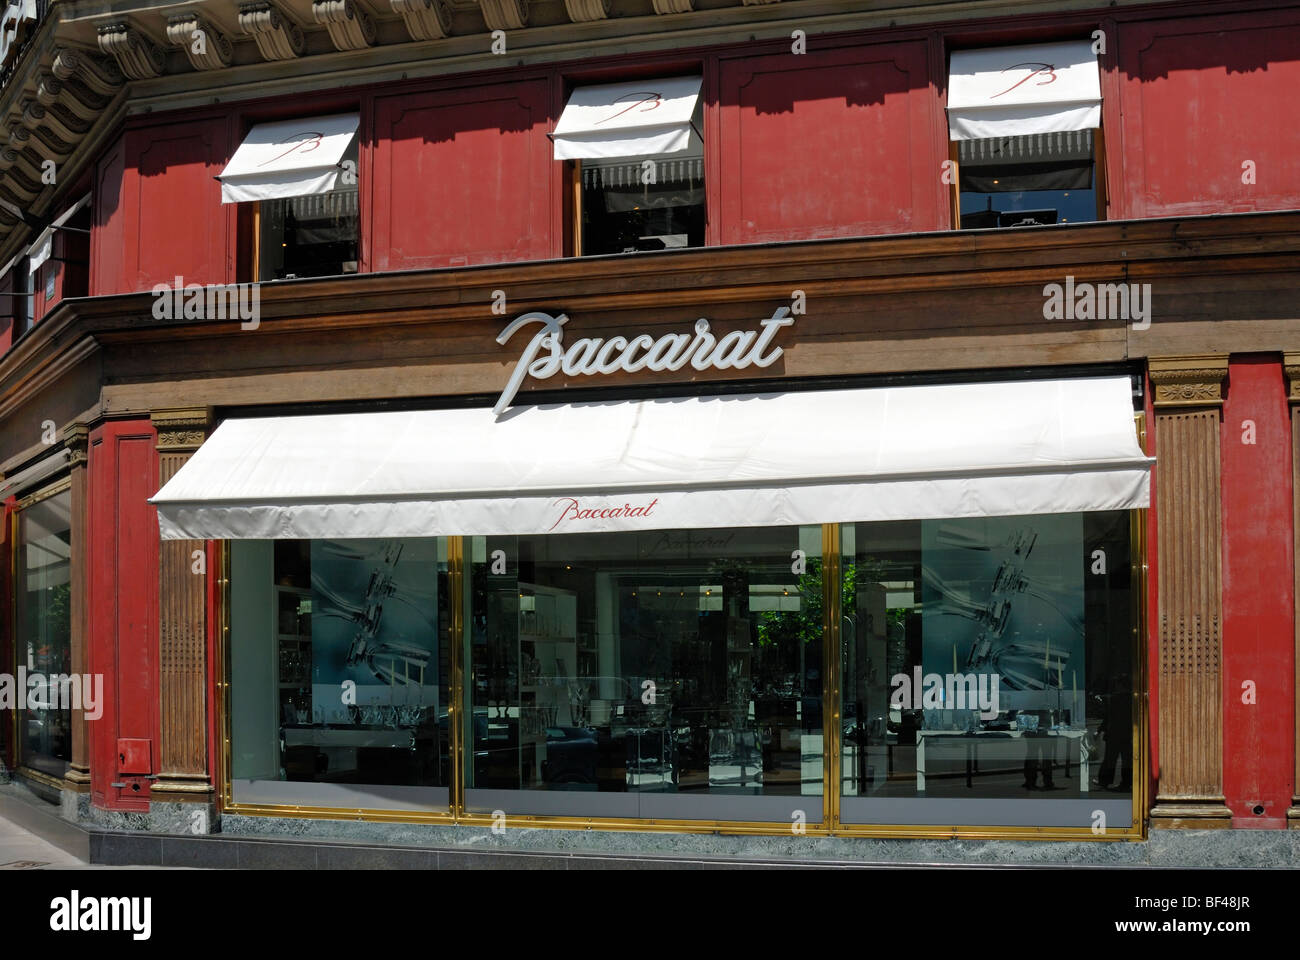 Baccarat flagship store, Paris, France - Stock Image